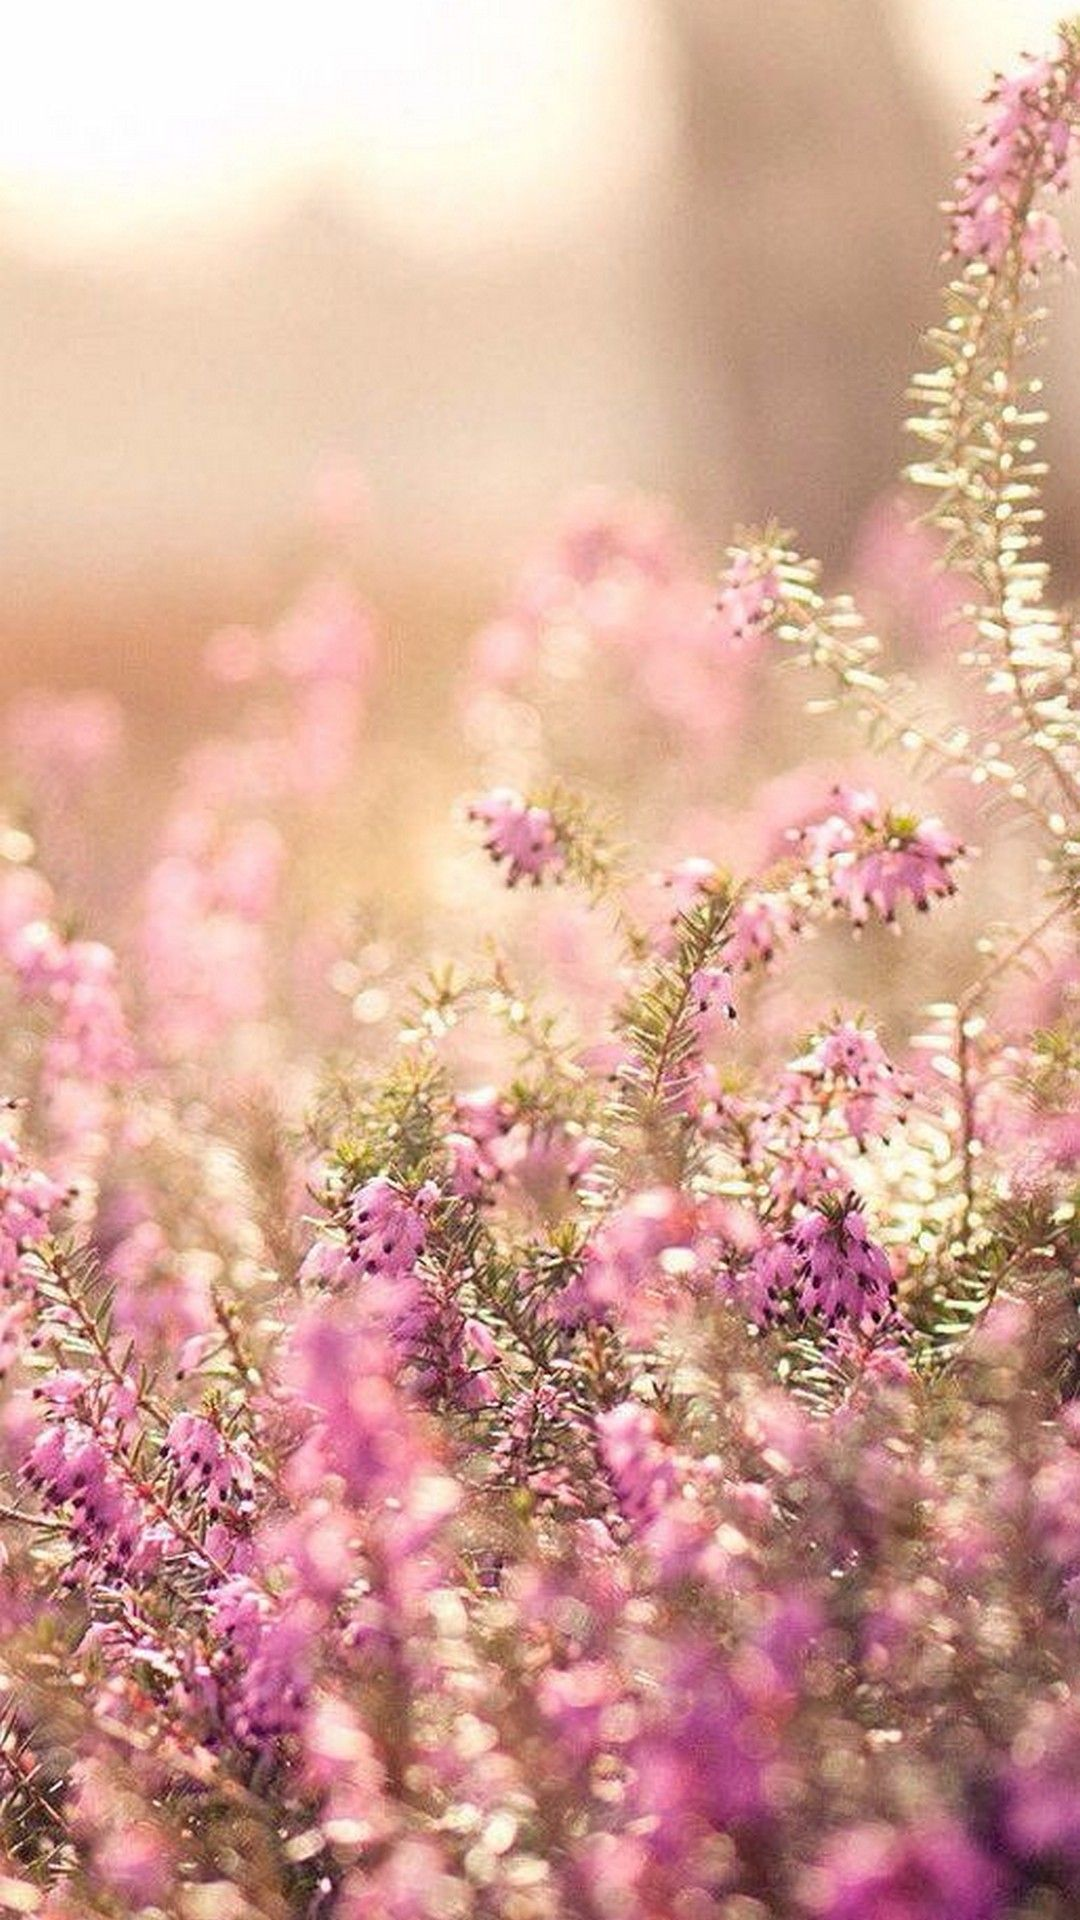 Cute Spring Iphone Wallpaper 2018 Iphone Wallpapers